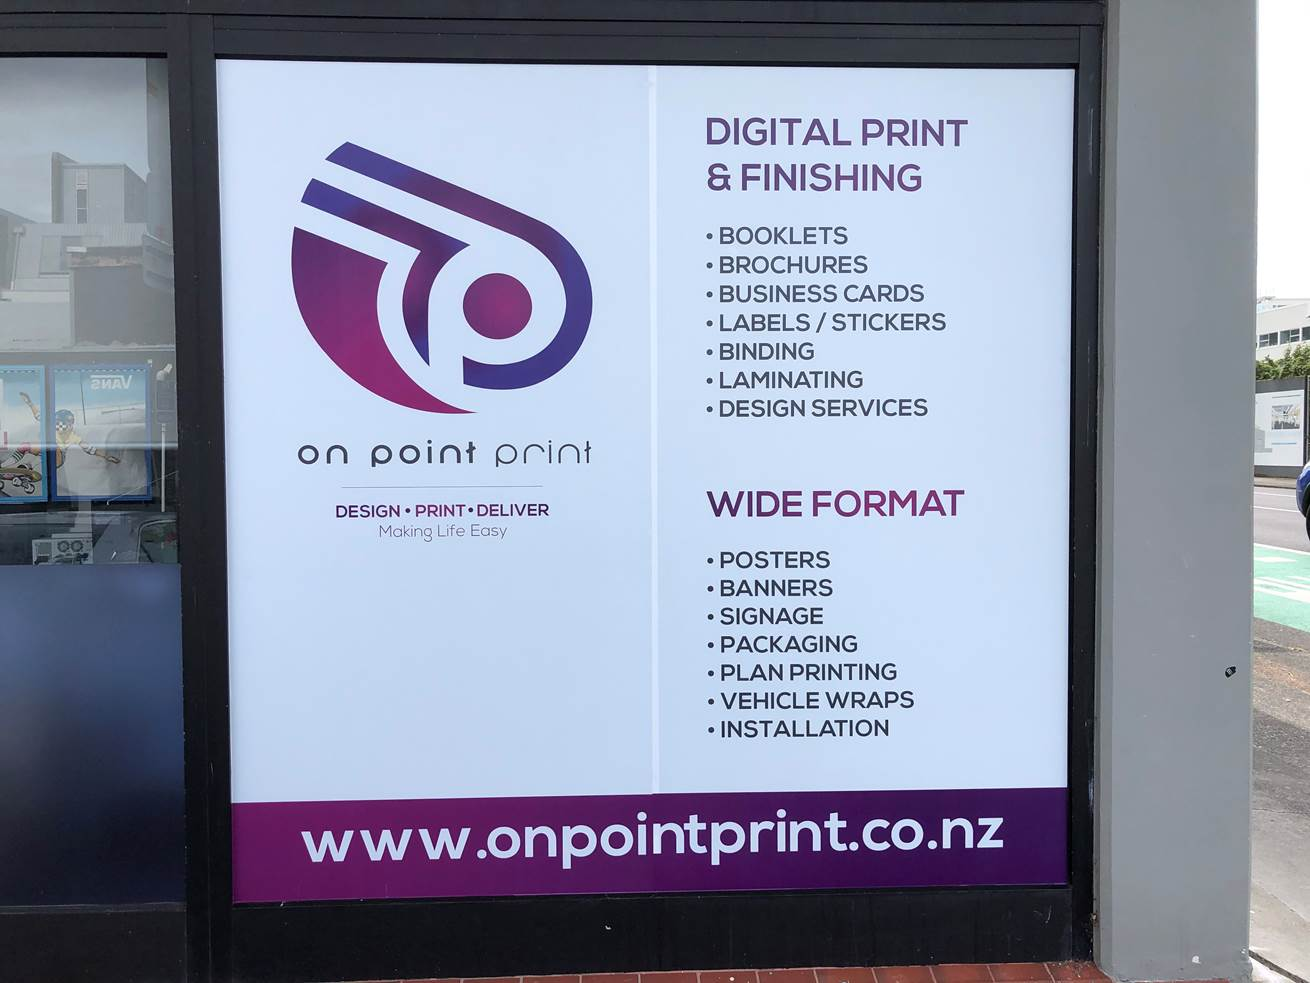 ON POINT PRINT